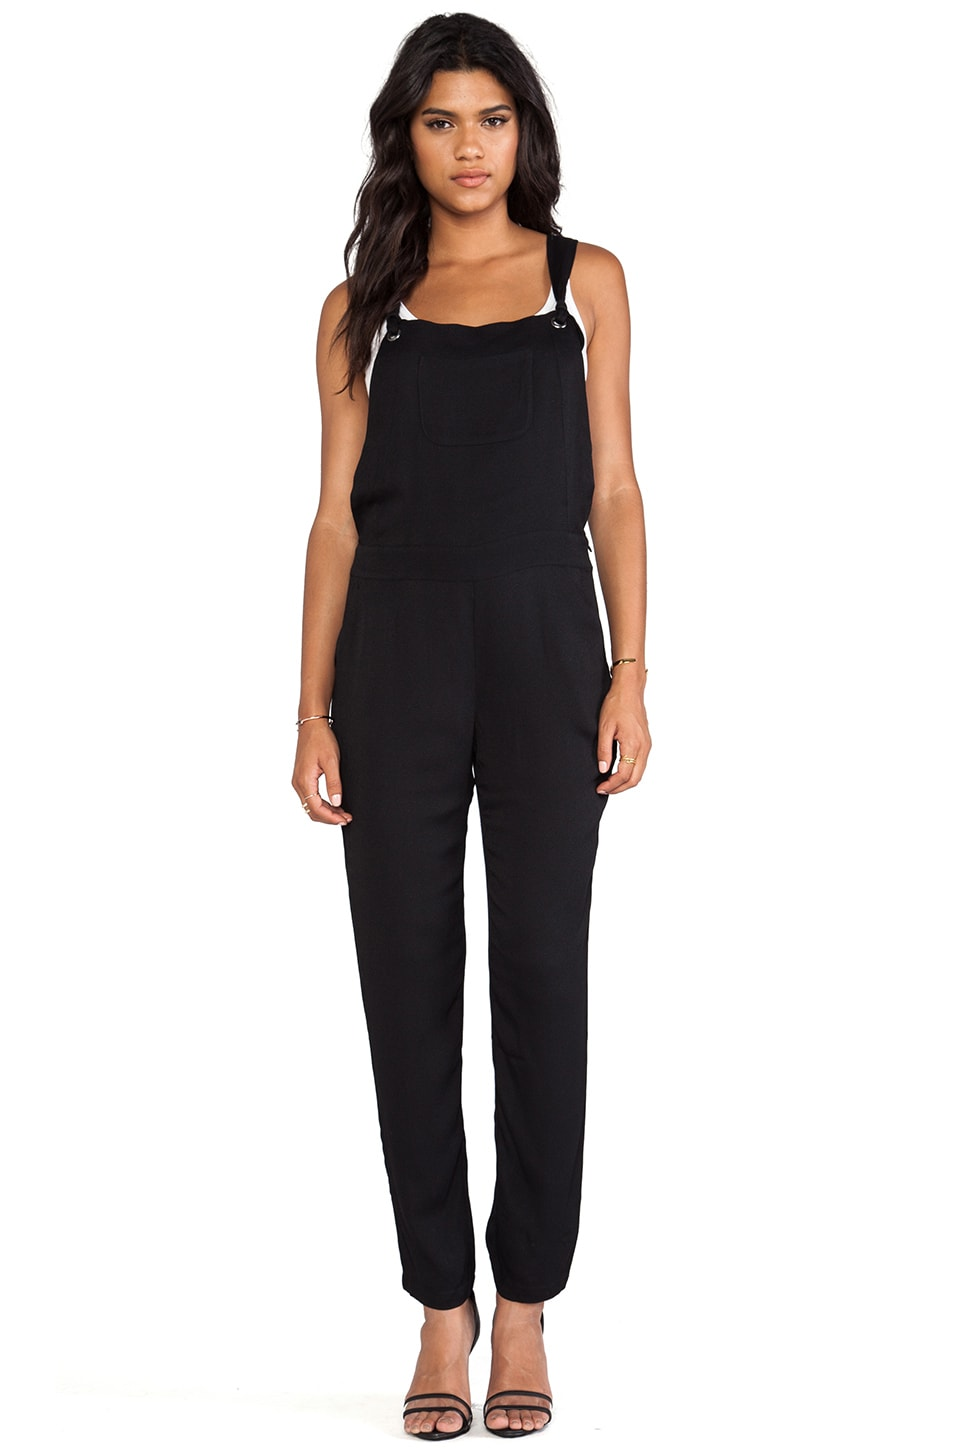 Ella Moss Stella Jumpsuit in Black